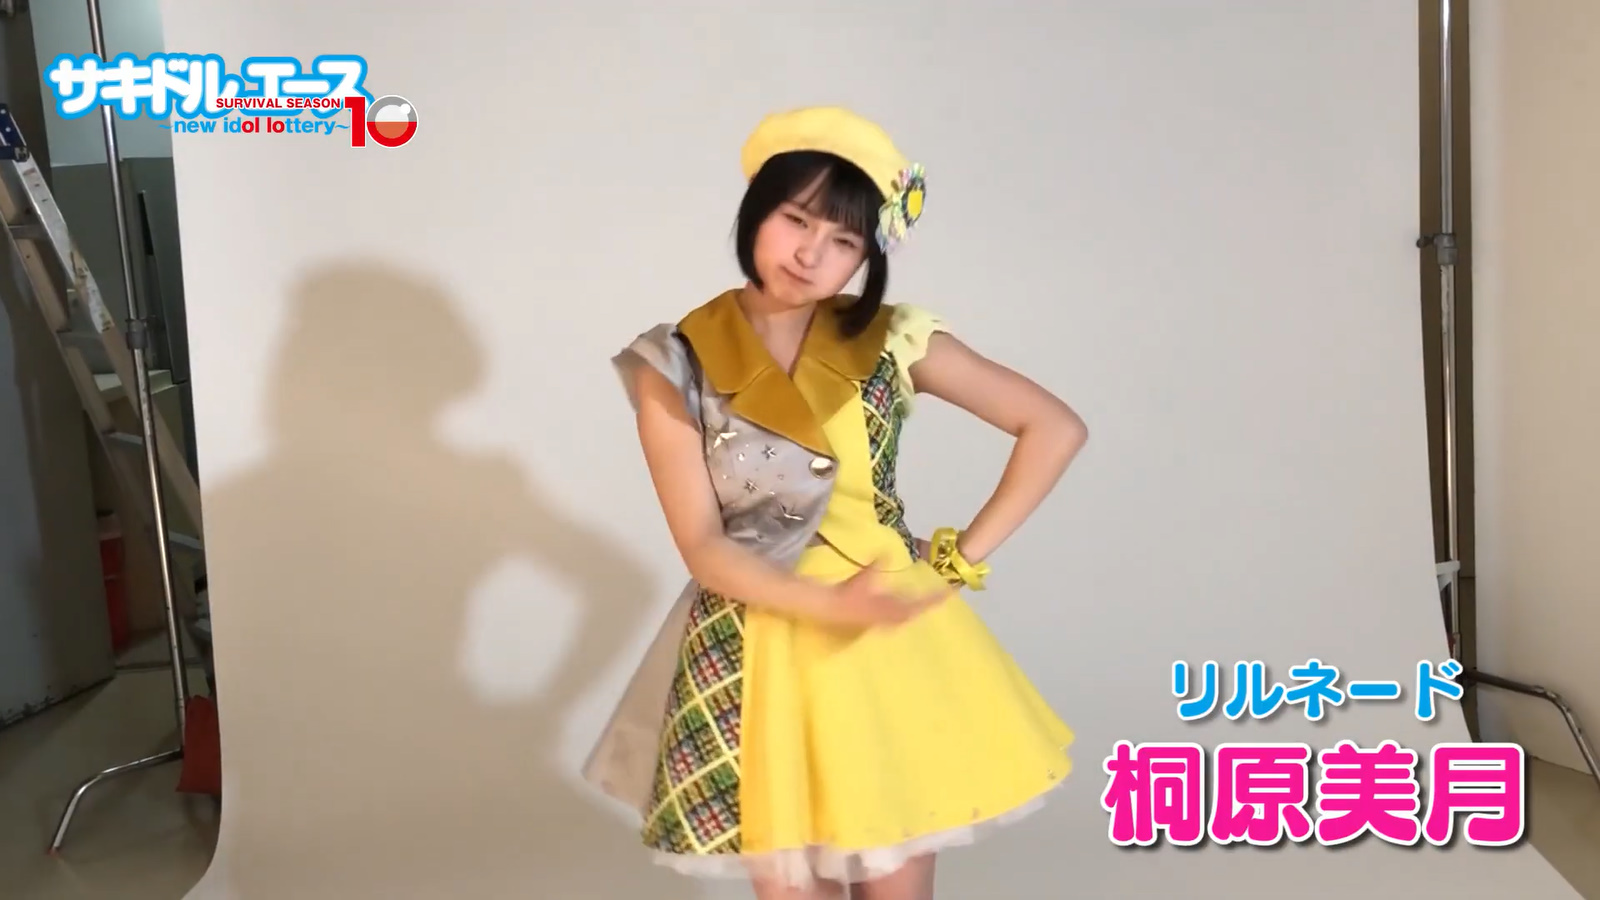 Sakidol Ace 10 Introduction Movie Capture of Swimsuit083